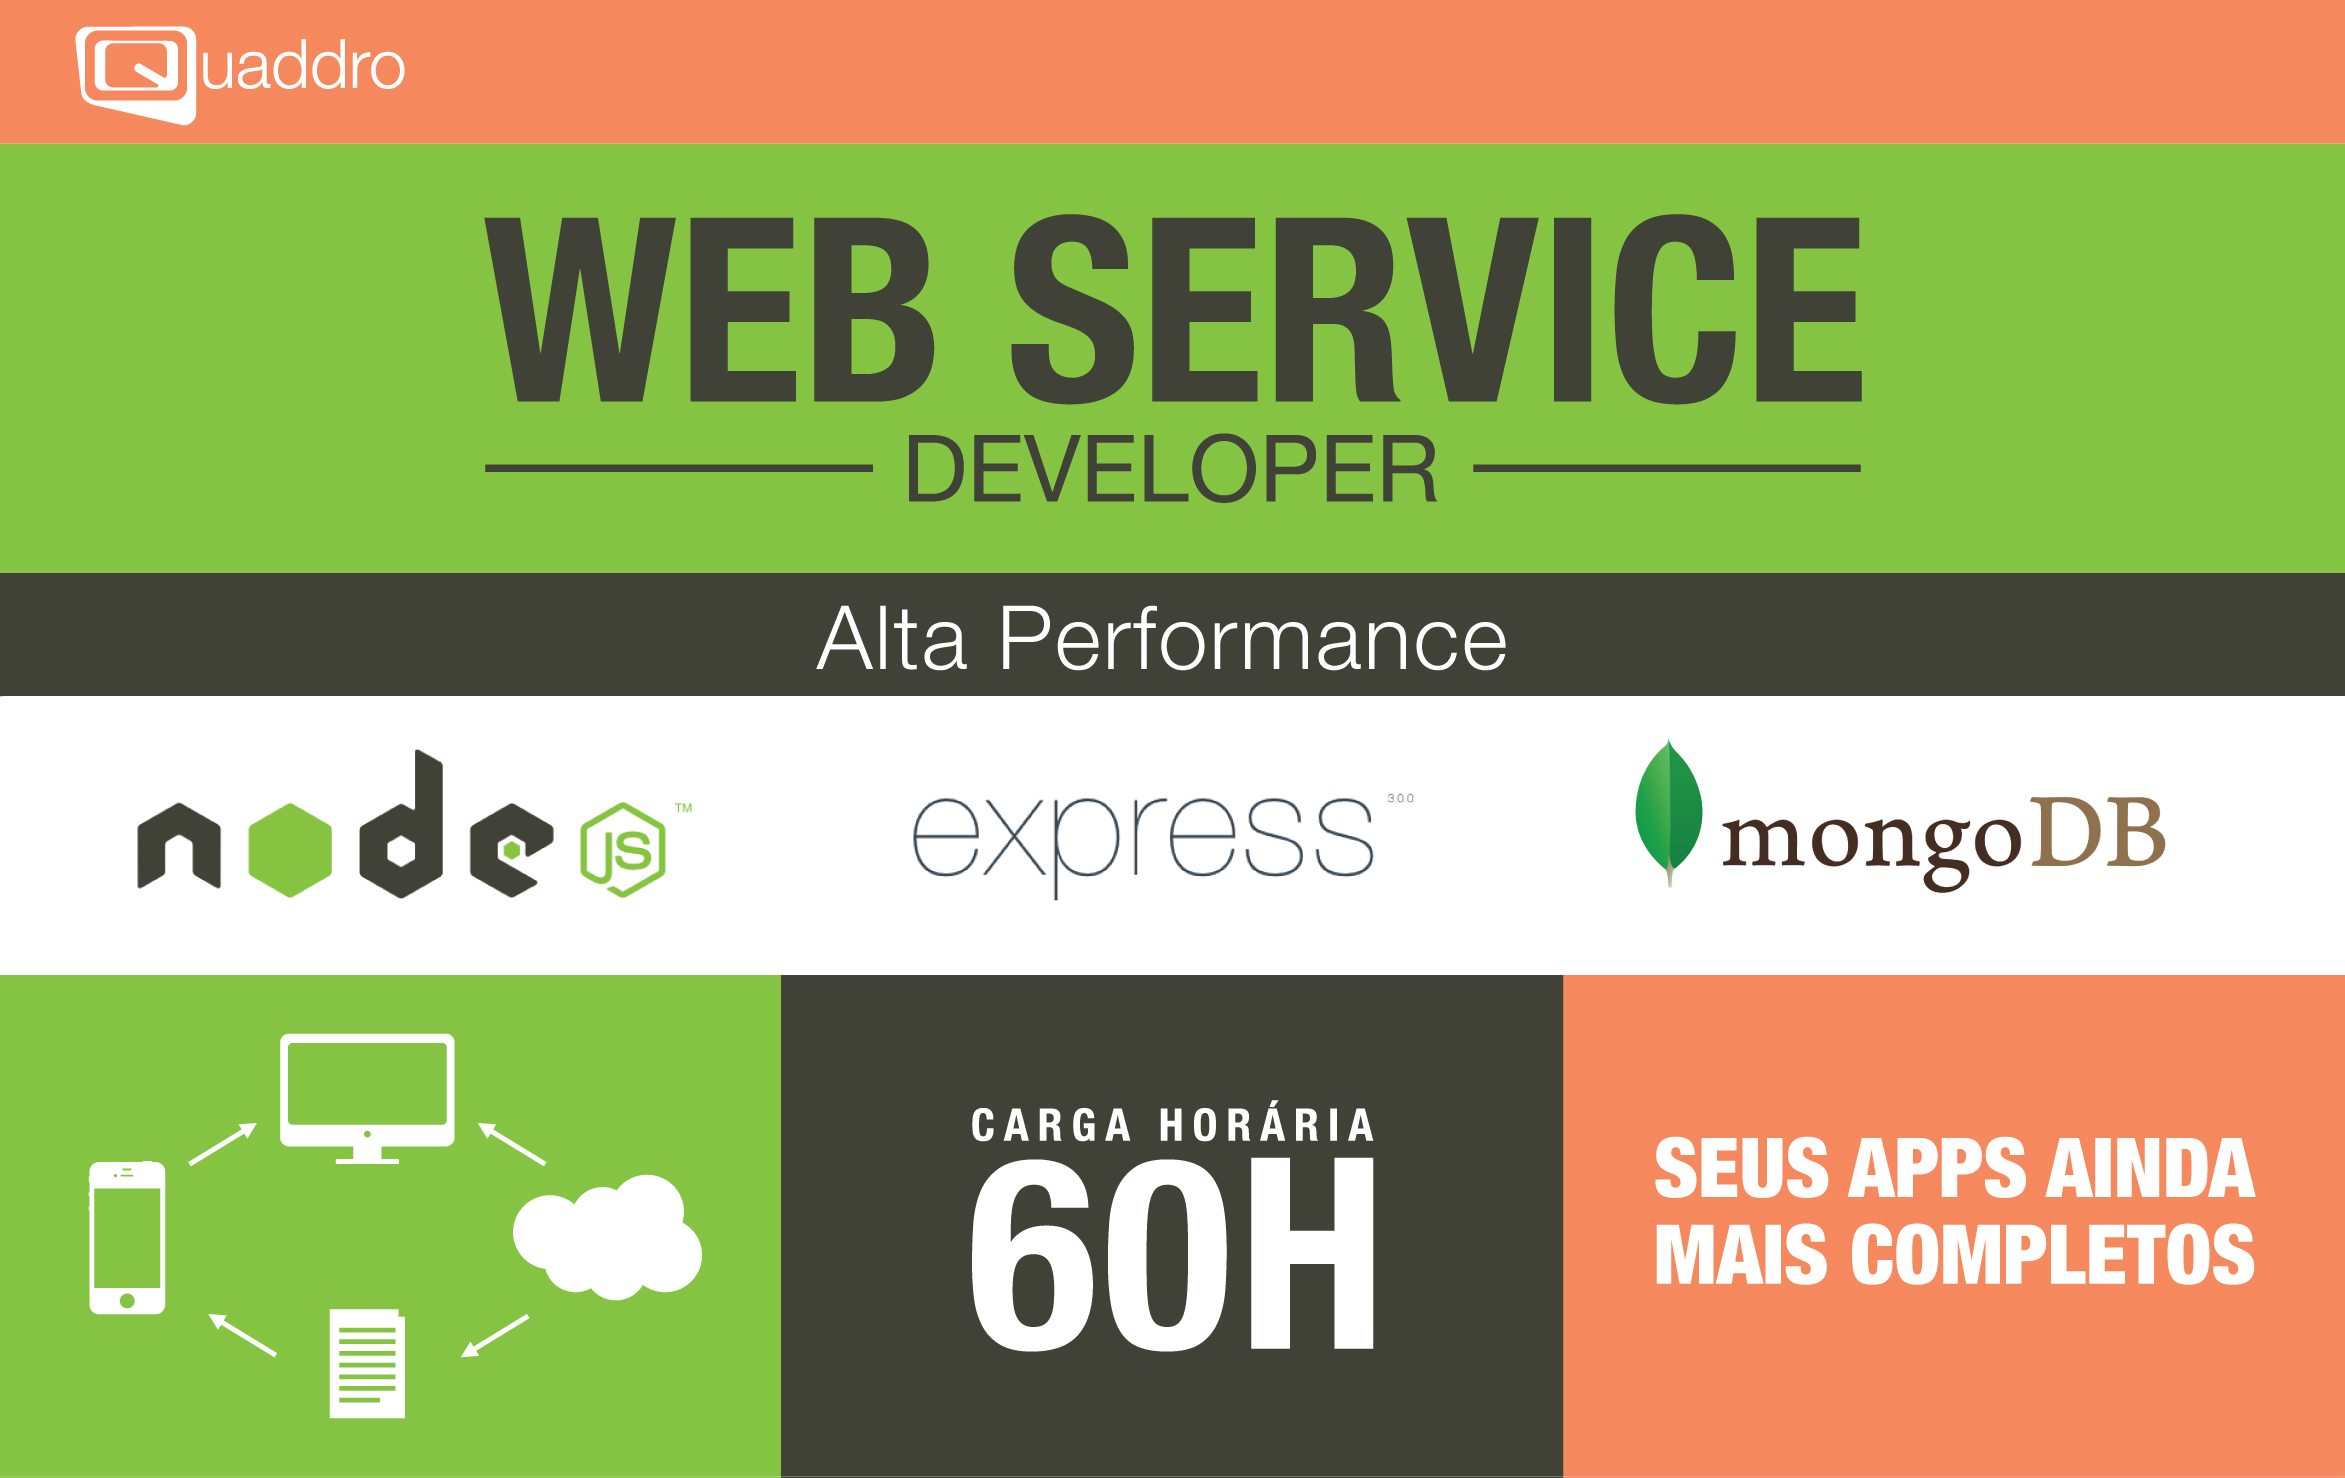 Quaddro - Web Service Developer